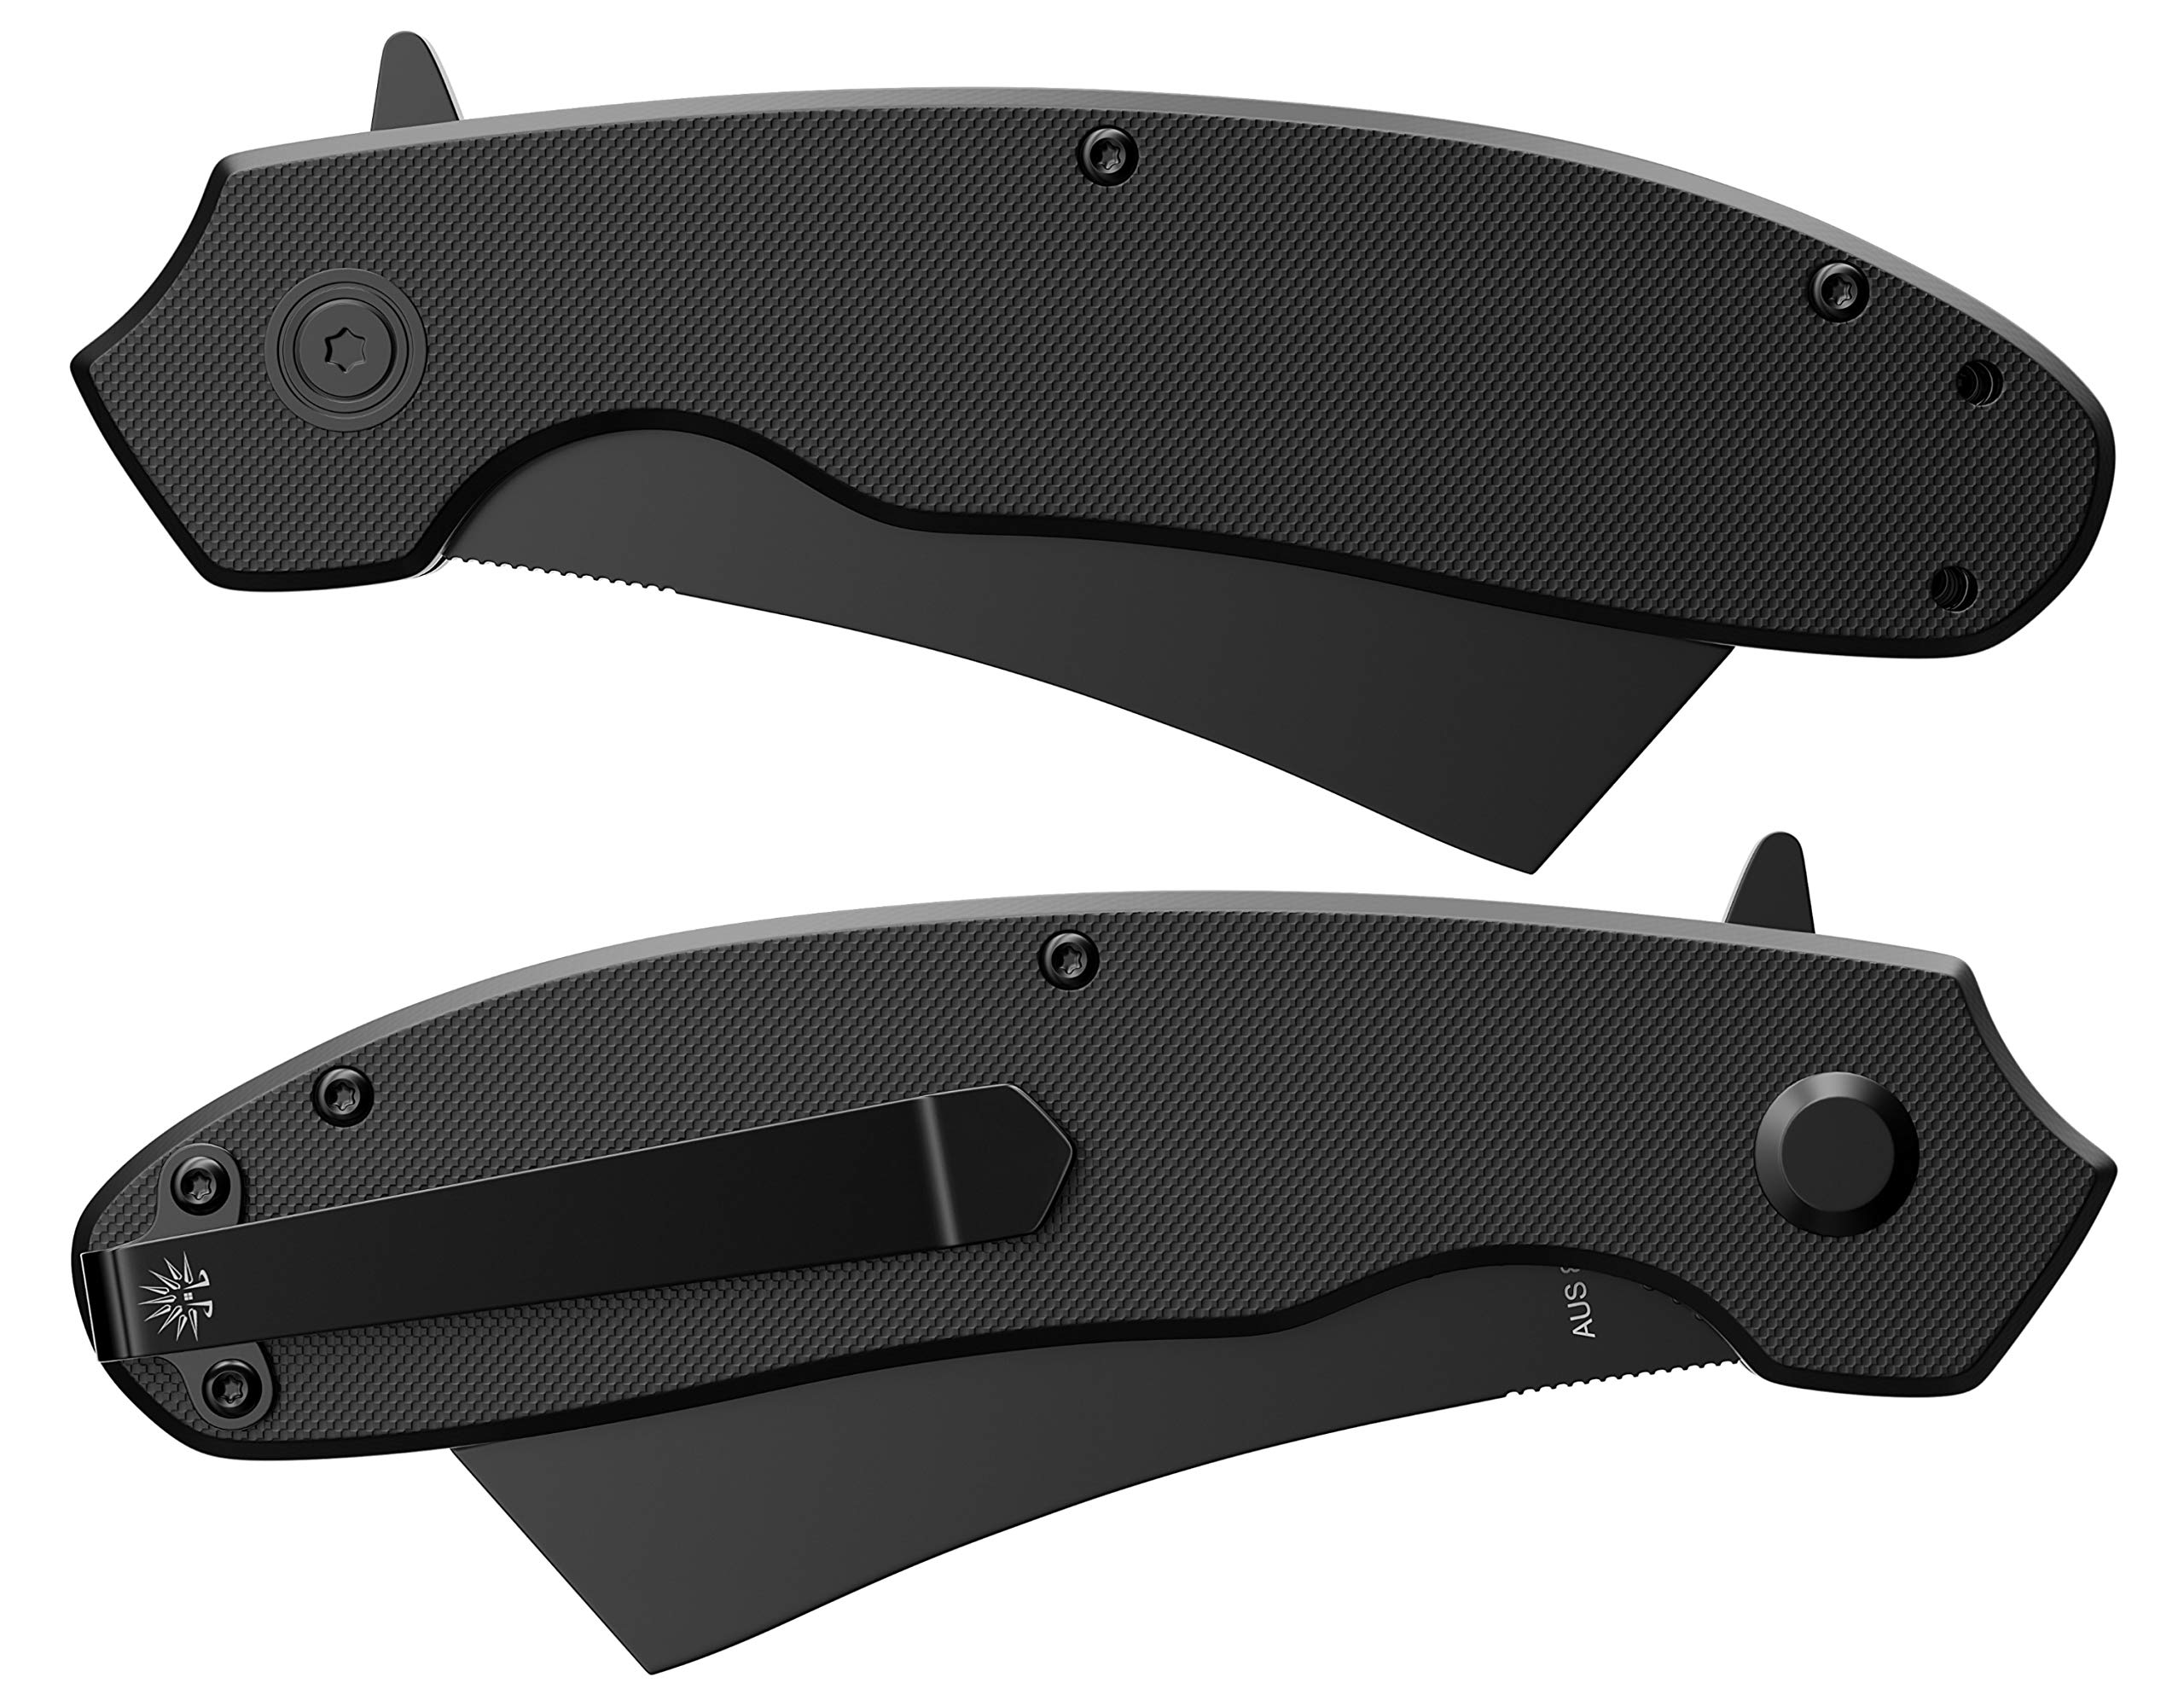 Off-Grid Knives - OG-950B Cleaver Blackout - Legal Carry Tough EDC Folding Knife - Cryo AUS8 Blade Steel with Titanium Nitride Coating, G10 Scales & Tip-Up Reversible Deep Carry by Off-Grid Knives (Image #7)